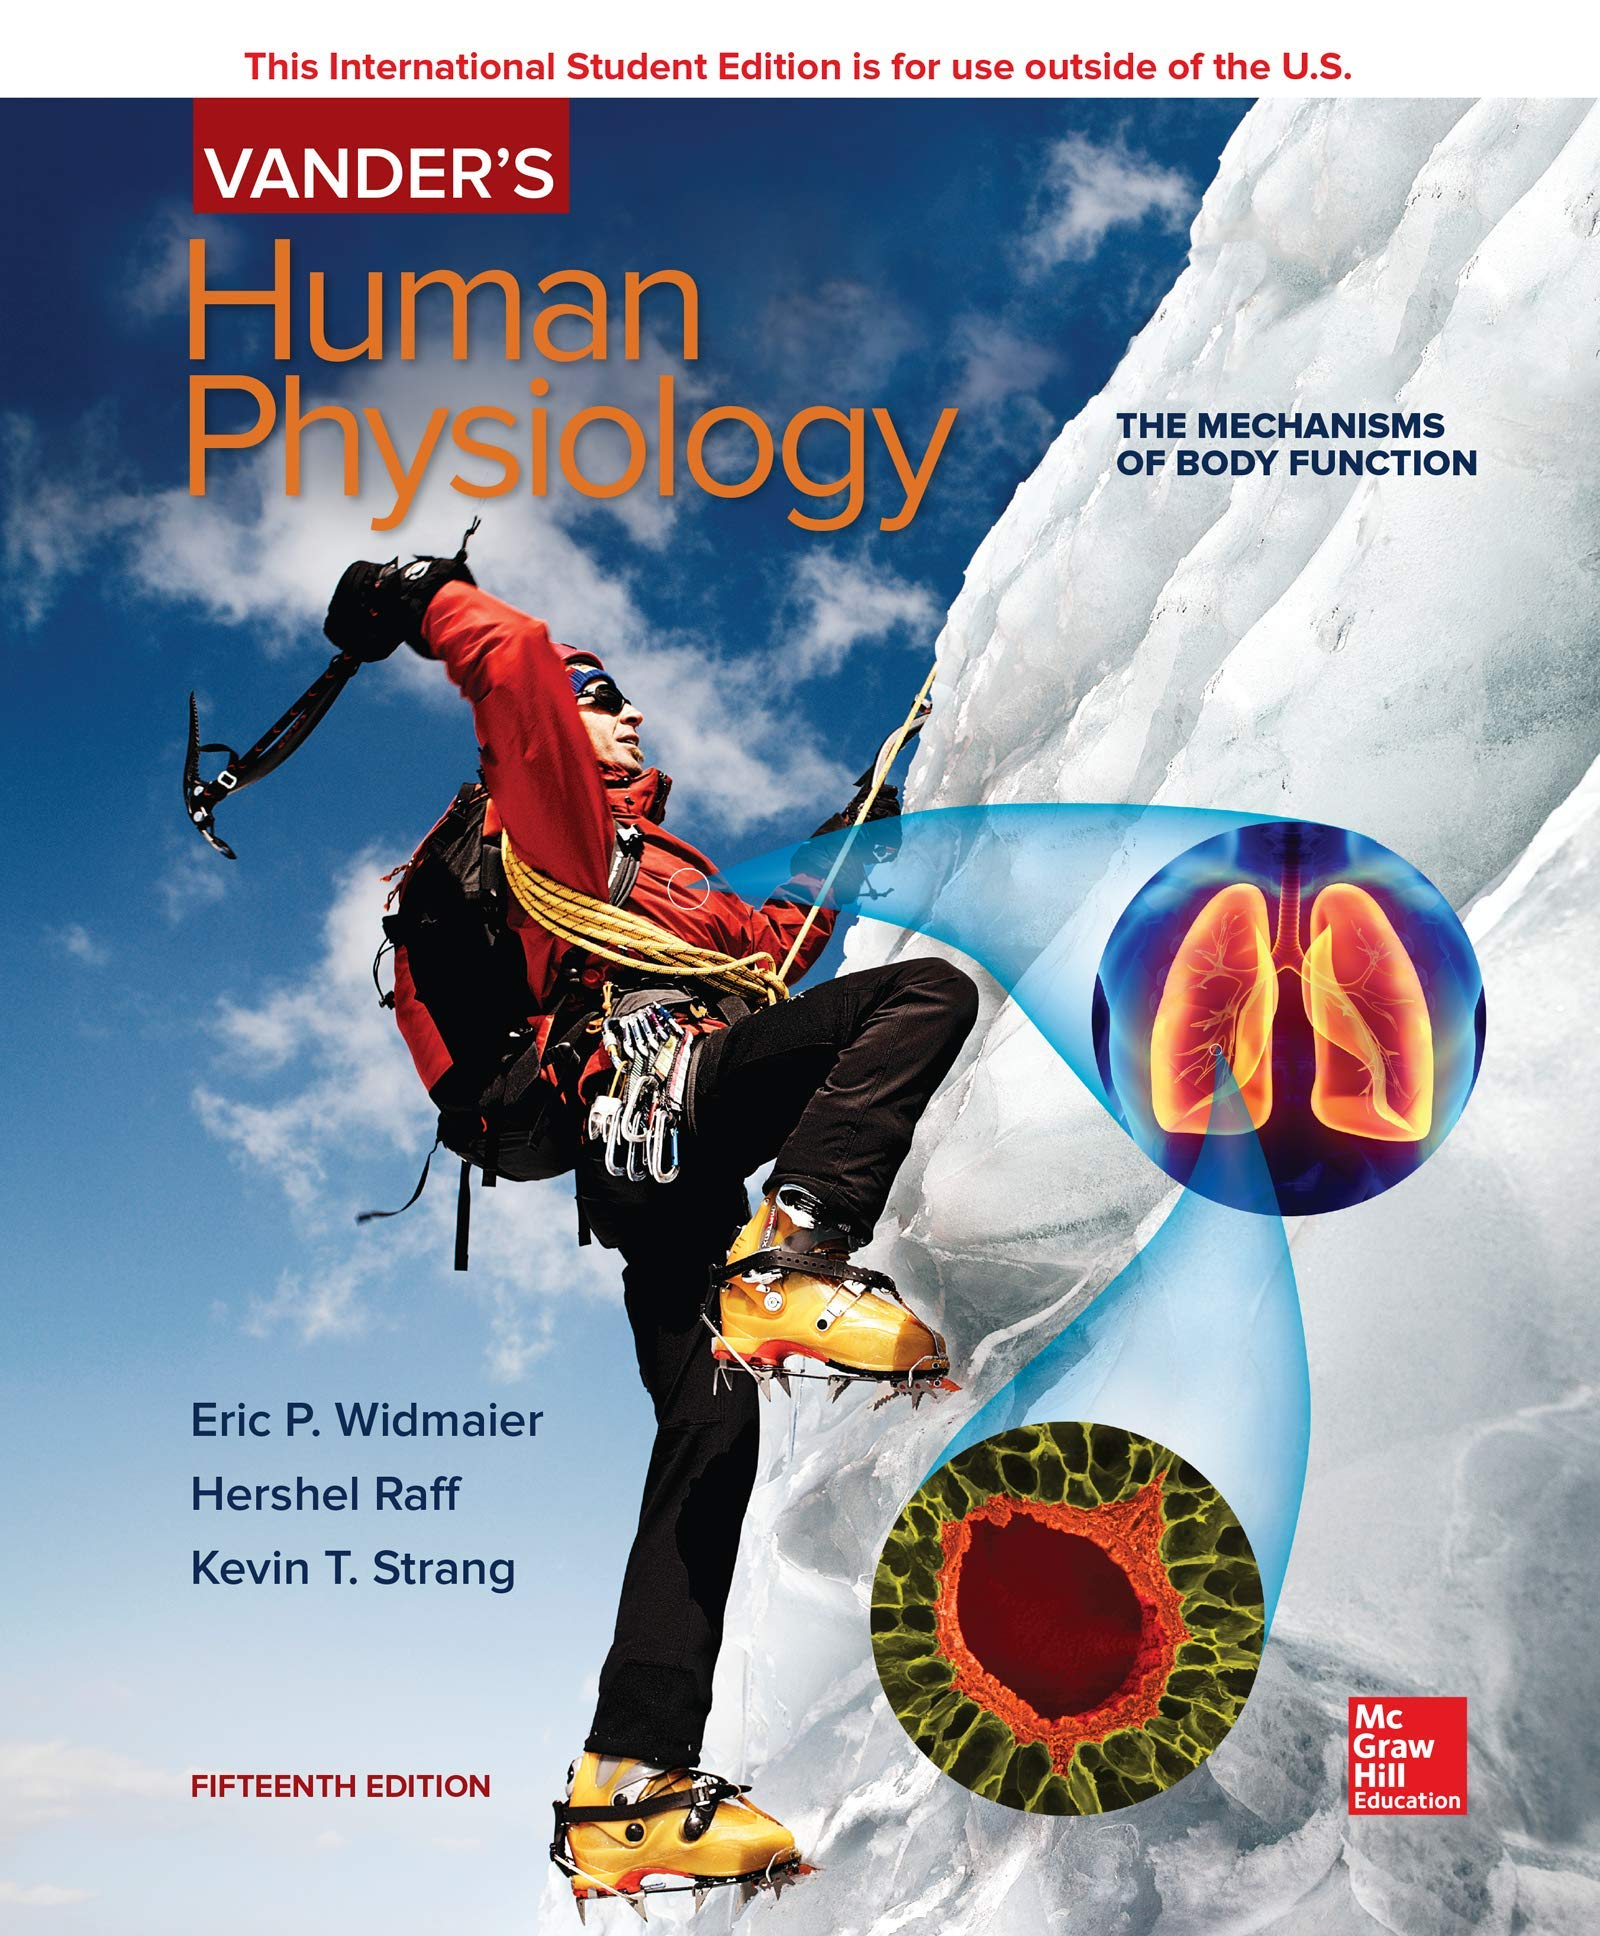 Vanders Human Physiology 15Th Edition: Widmaier: 9781260085228 ...